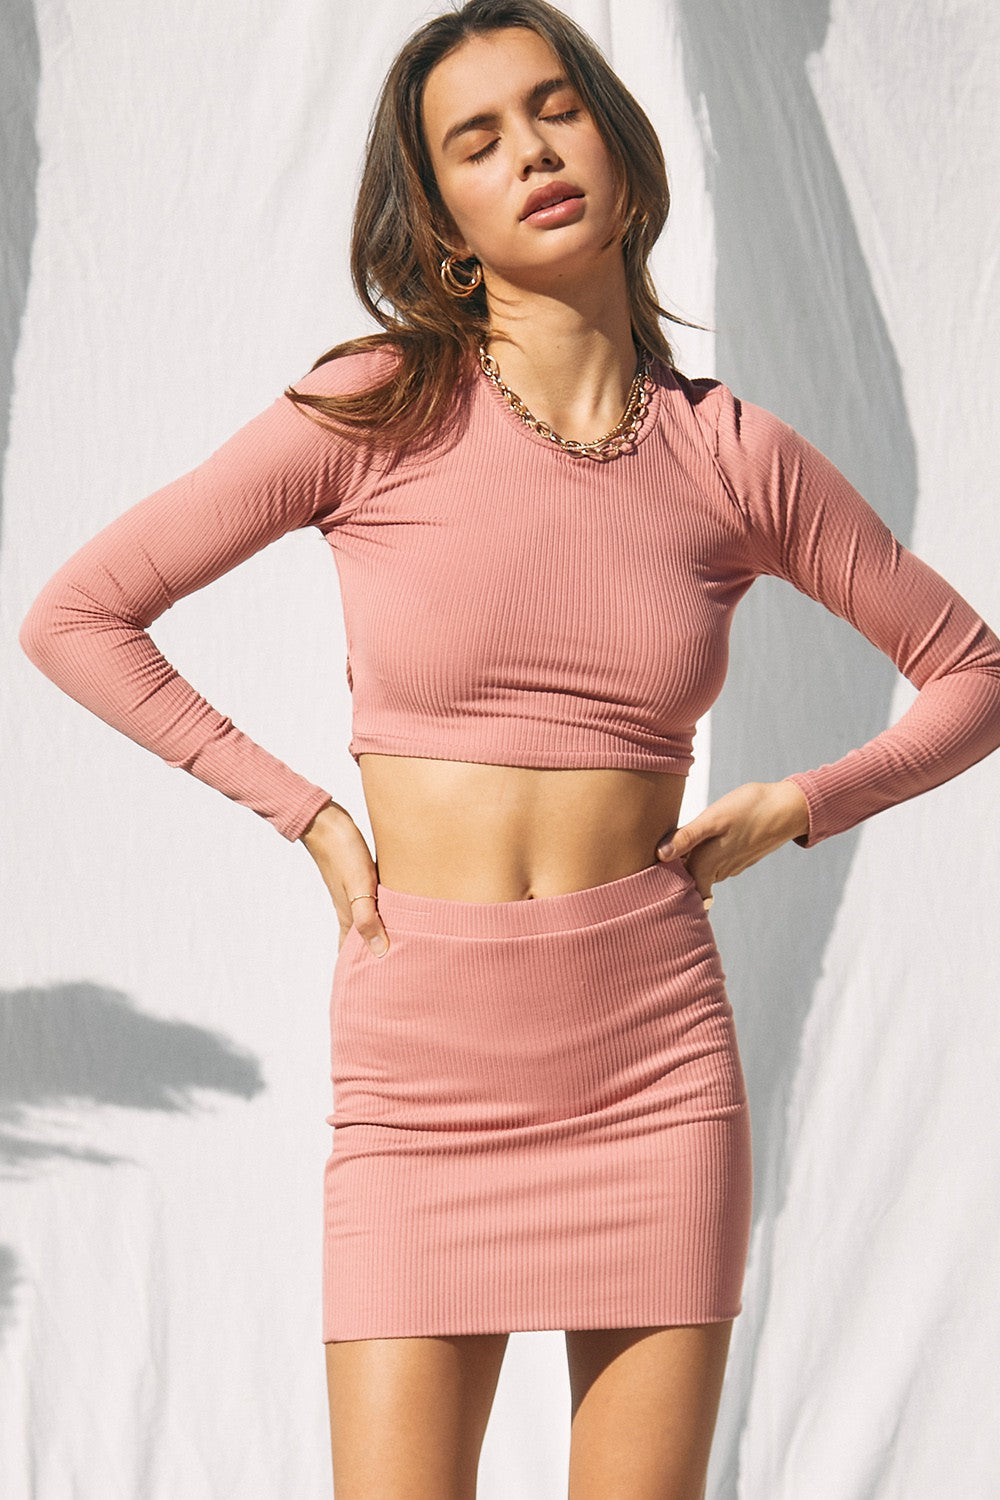 Solid Ribbed Crop Top And Mini Skirt (sold separately)